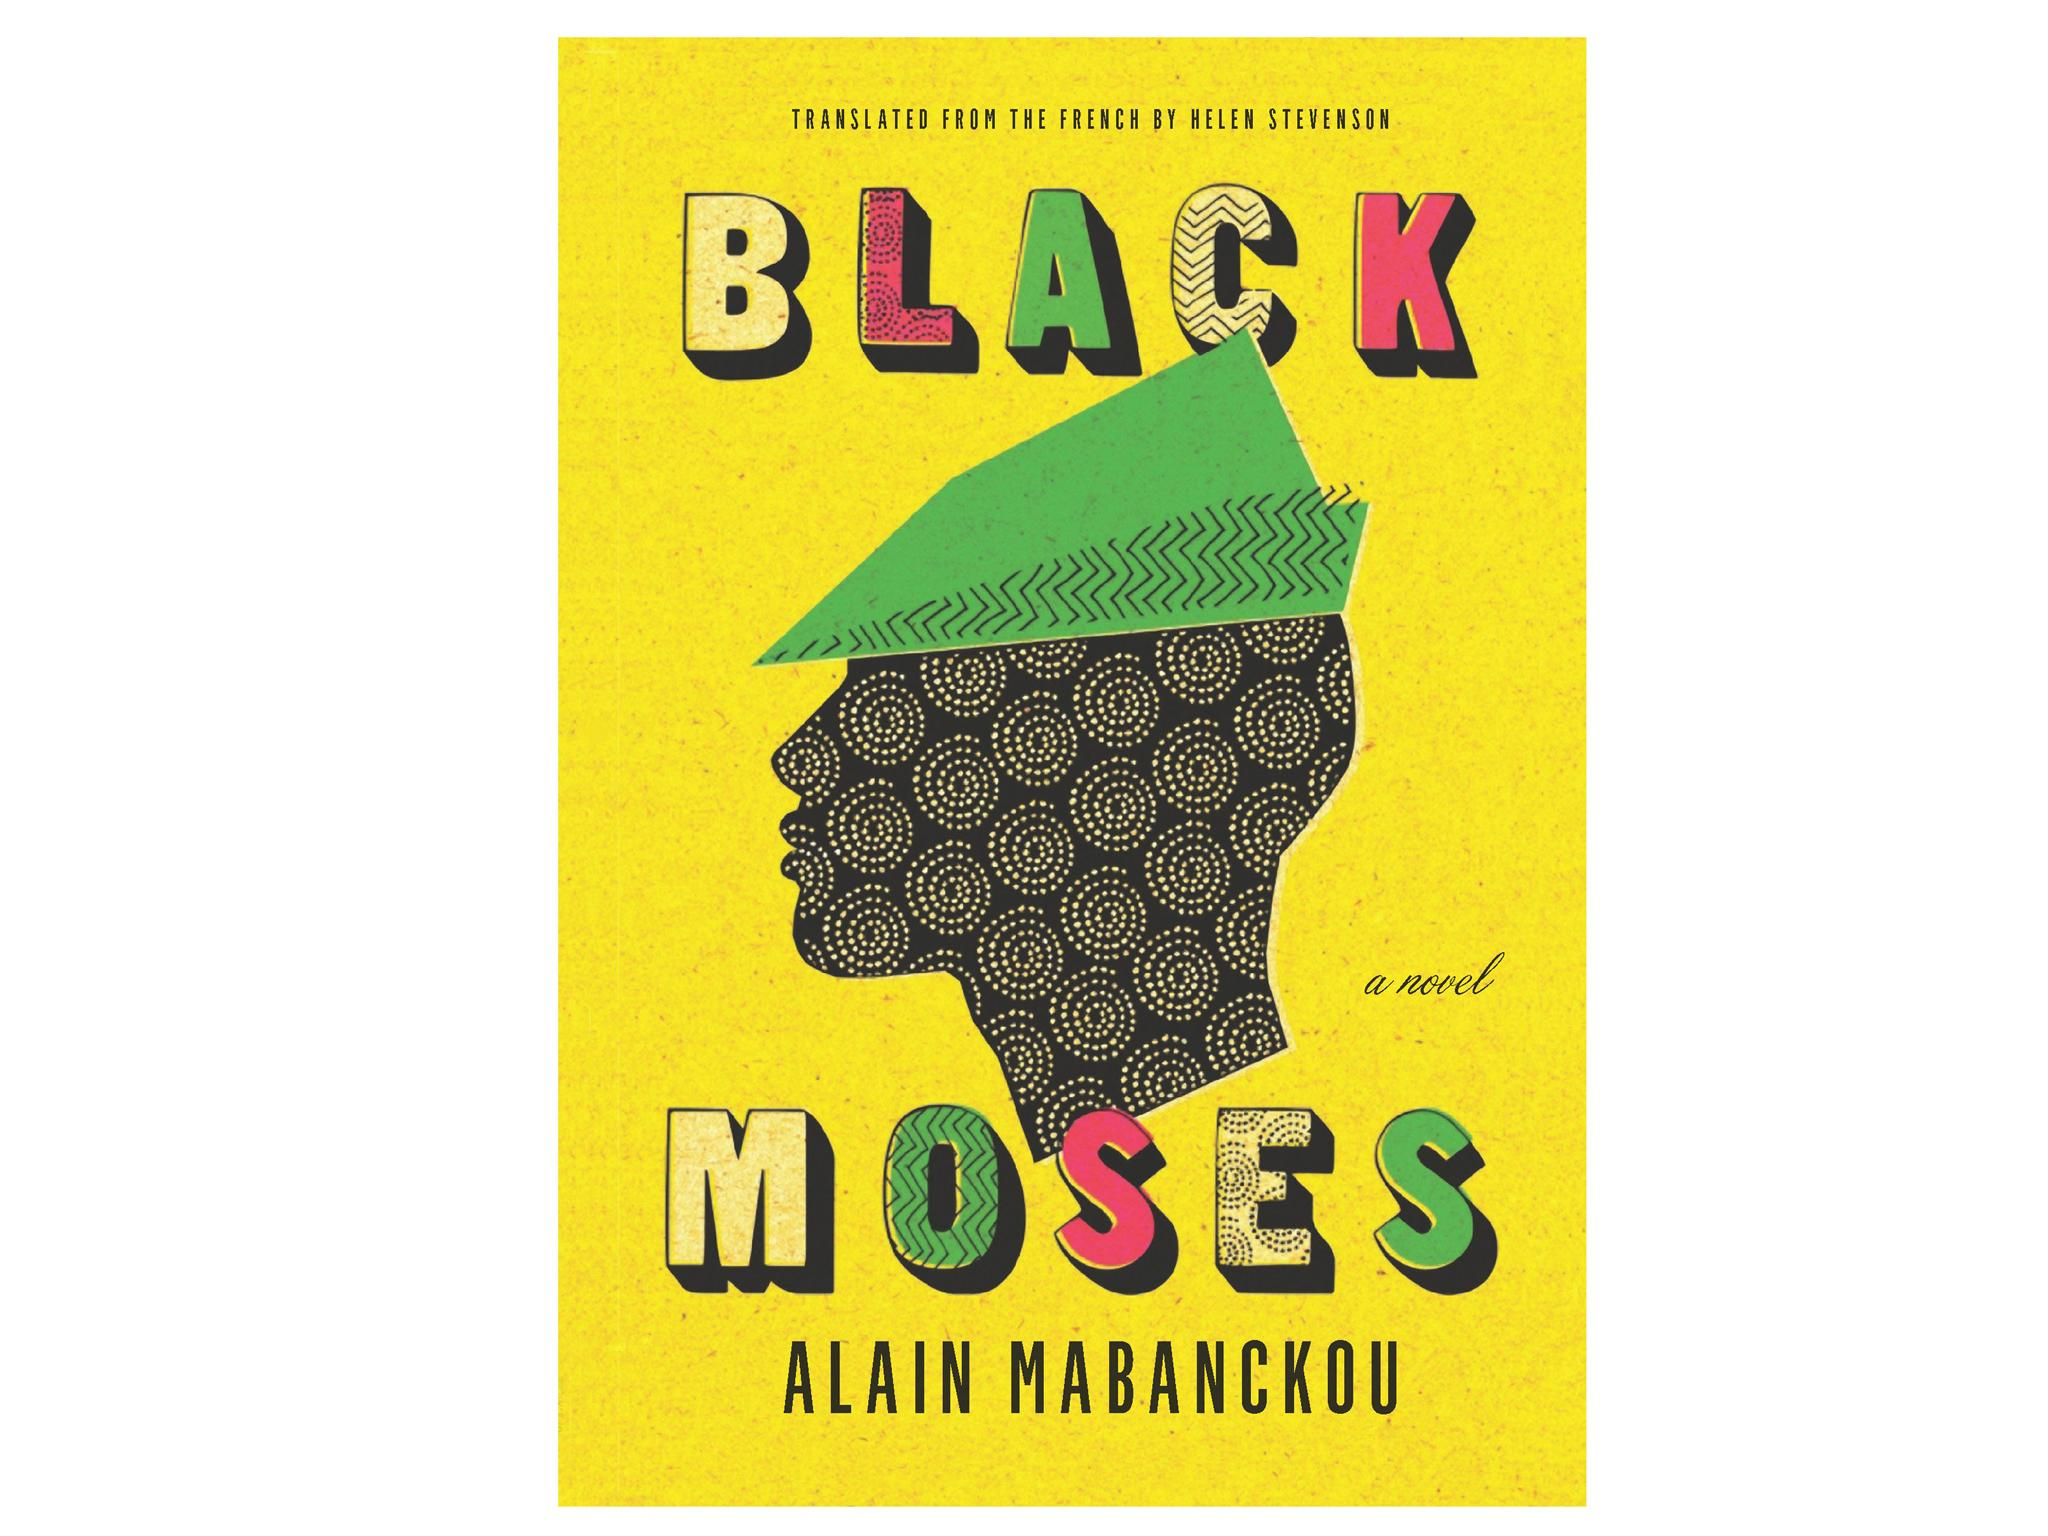 10 best translated fiction | The Independent